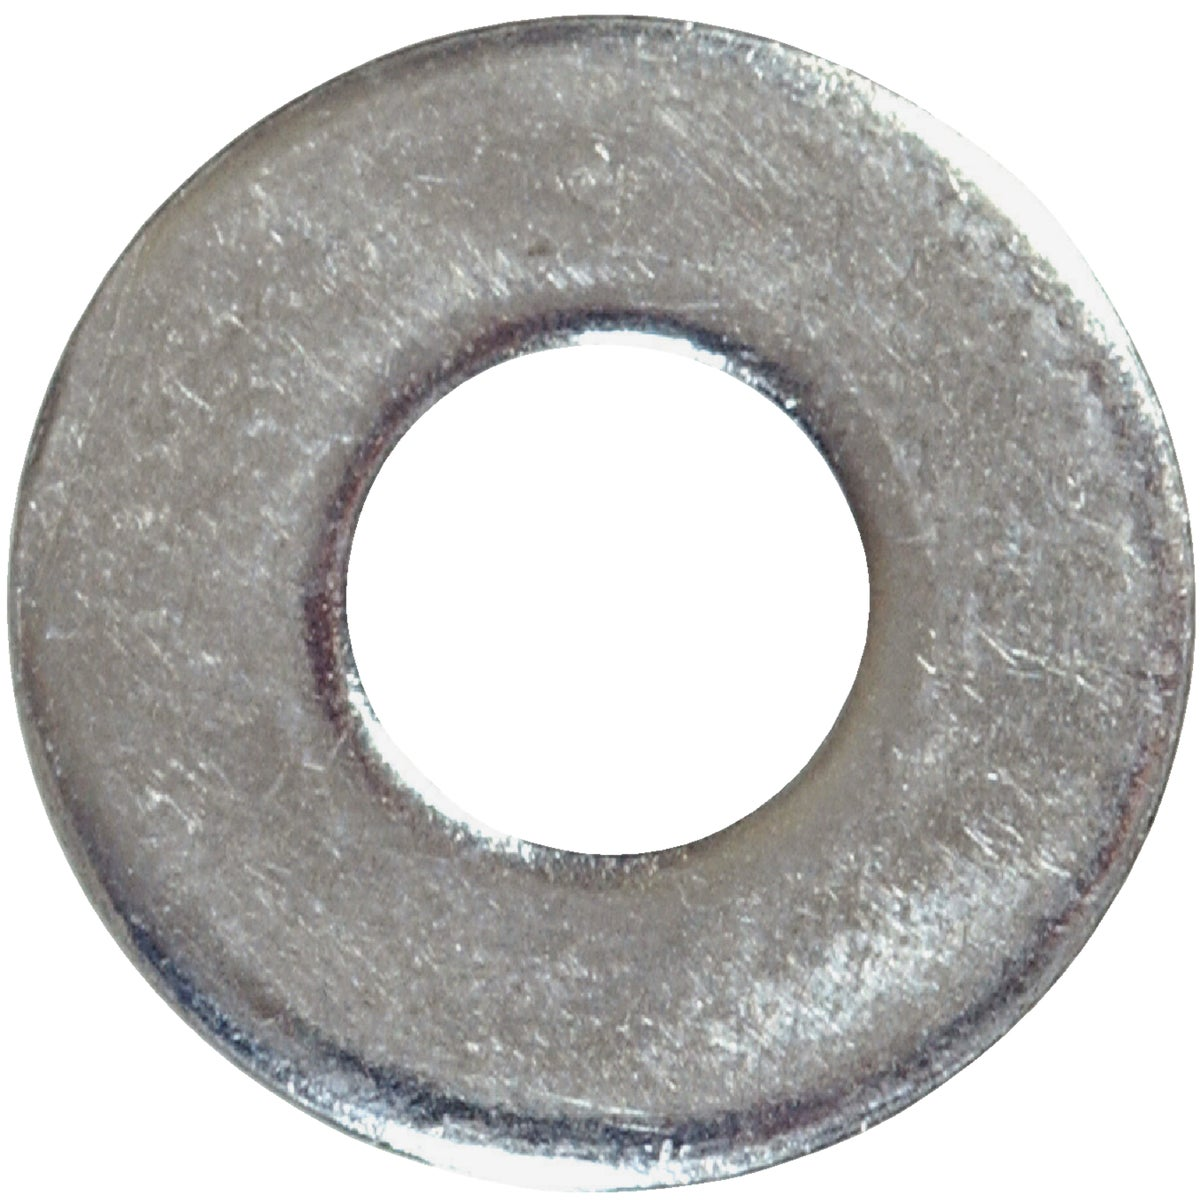 "20PC 3/4"" USS FLT WASHER - 270073 by Hillman Fastener"